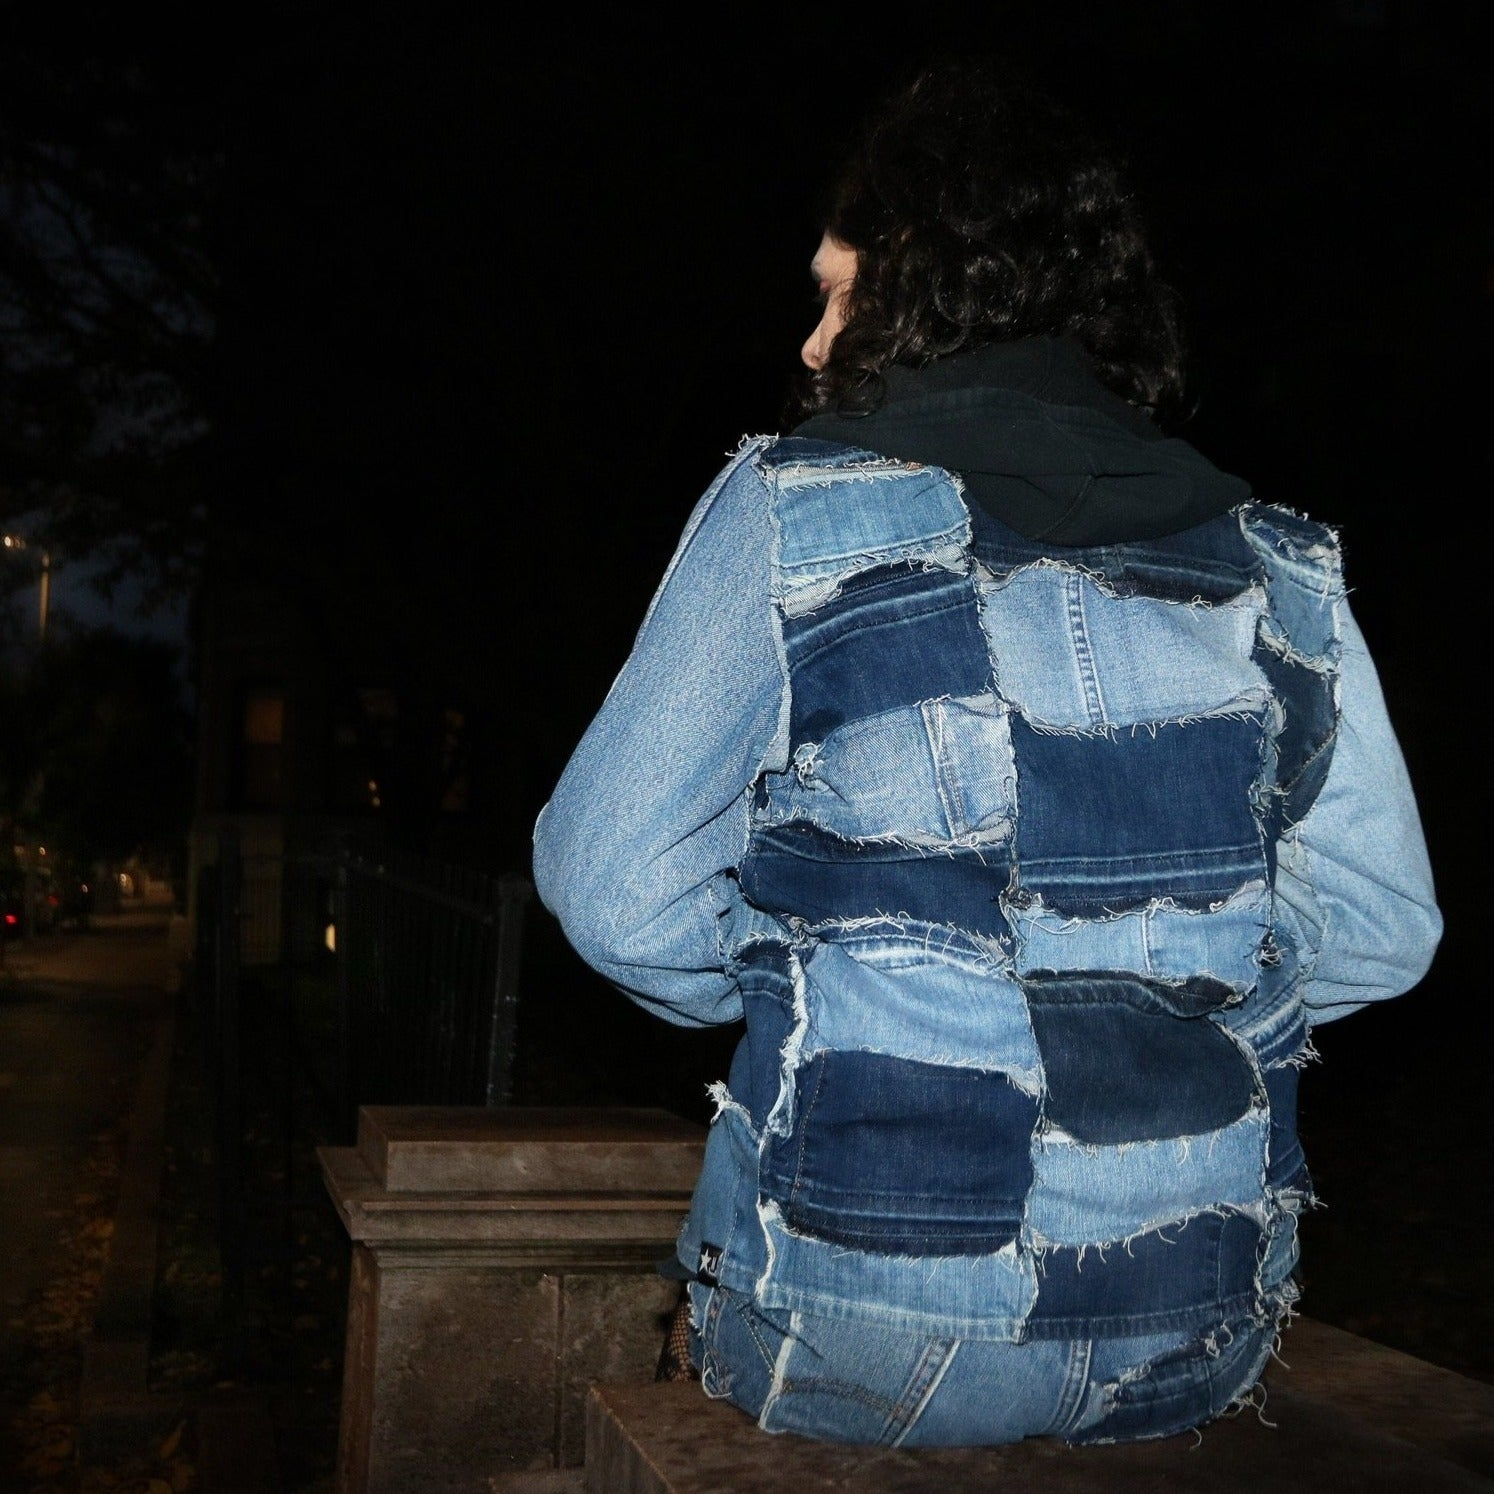 #REMIXbyStevieLeigh upcycled, reversible, sustainable denim jacket